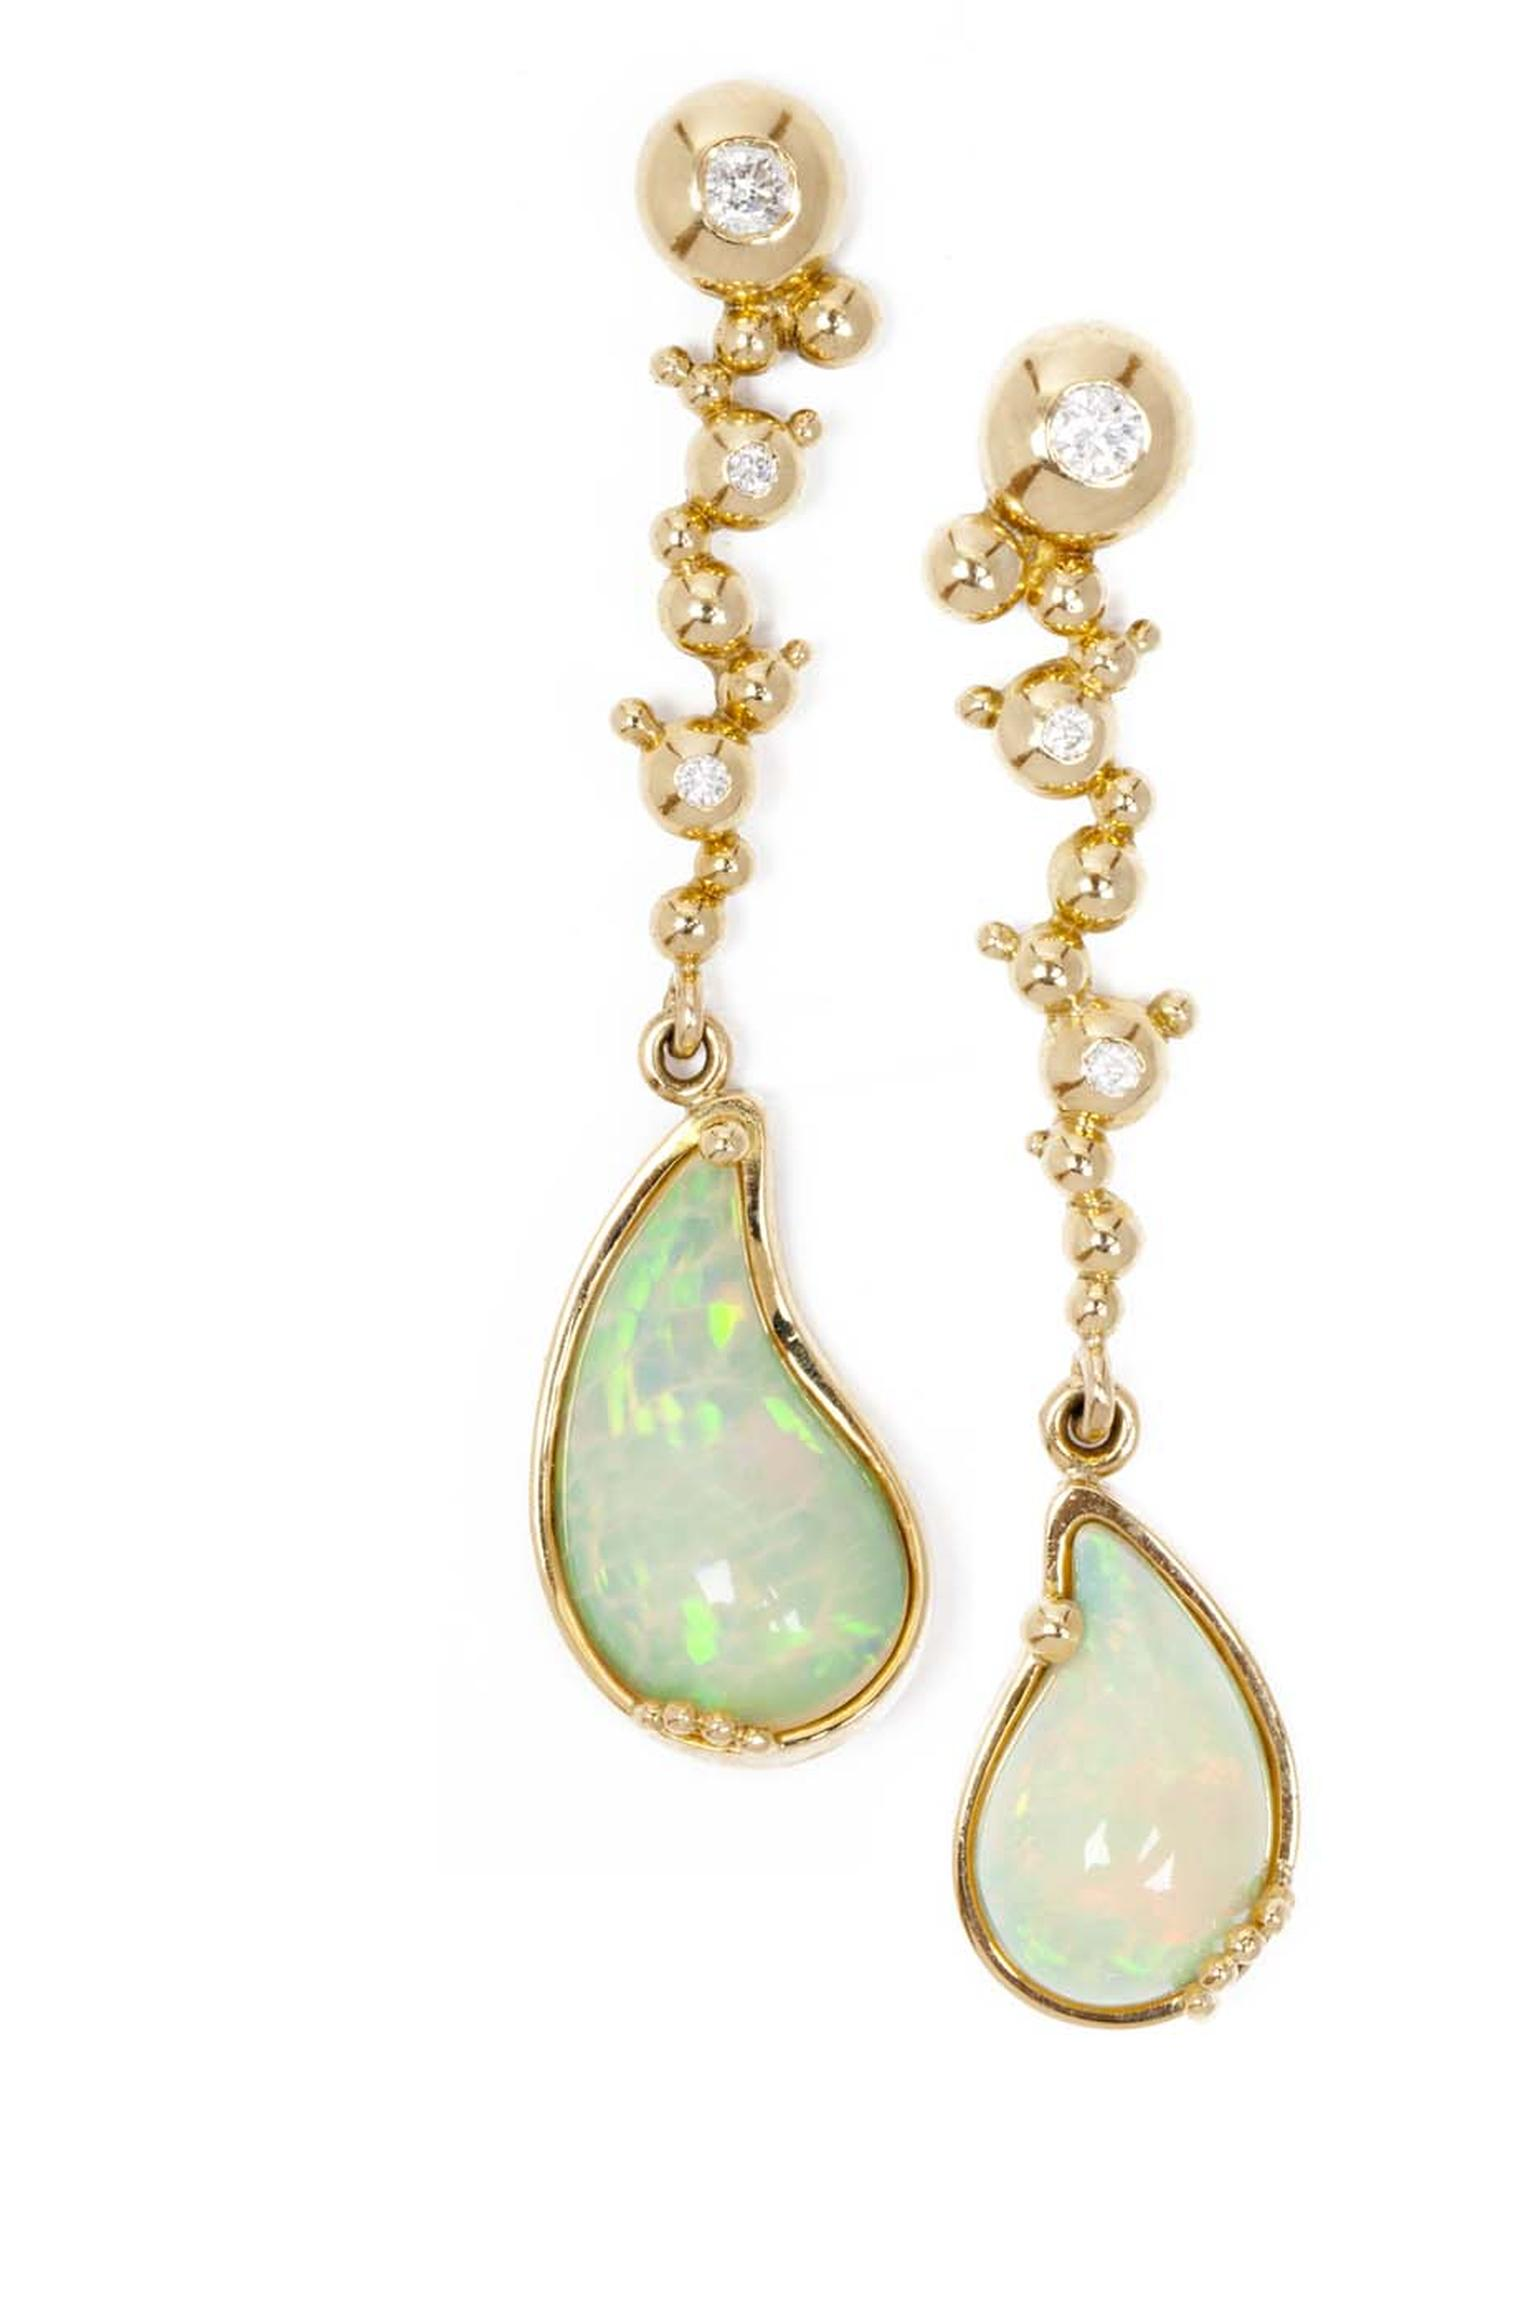 Ornella Iannuzzi Holy Water gold earrings featuring opal cabochons (5.5ct) and diamonds.